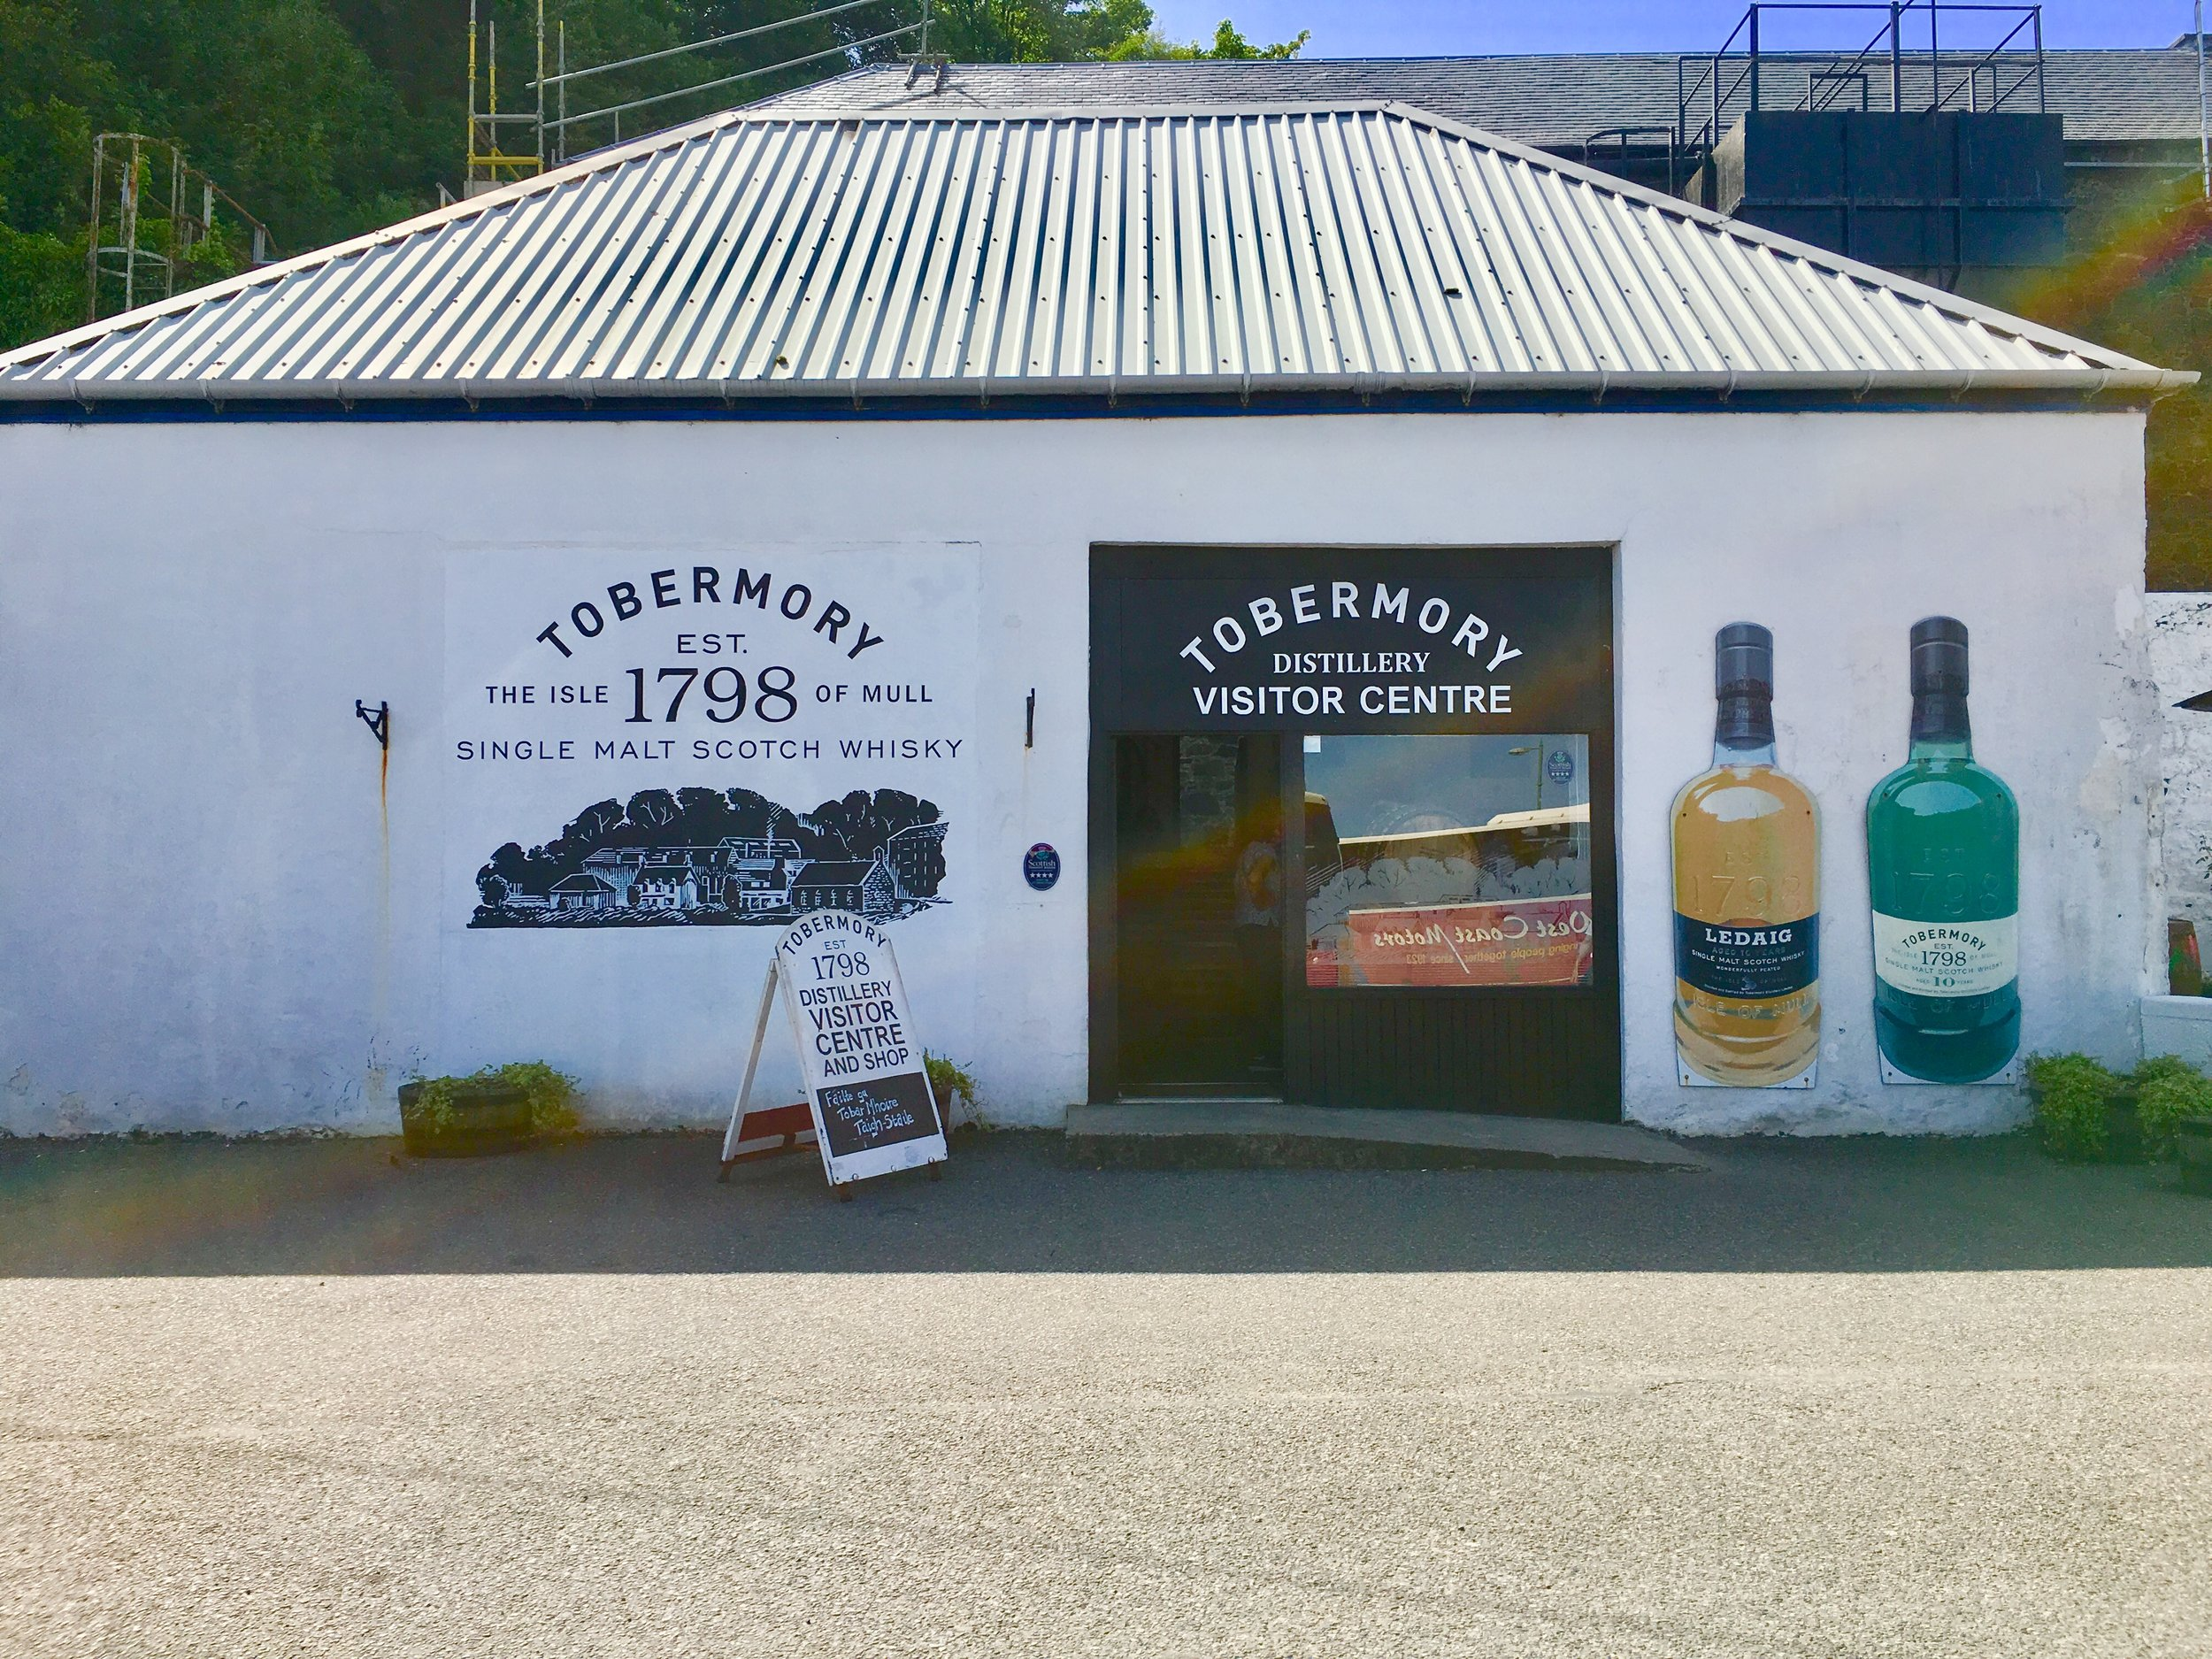 The visitor center for Tobermory Distillery.